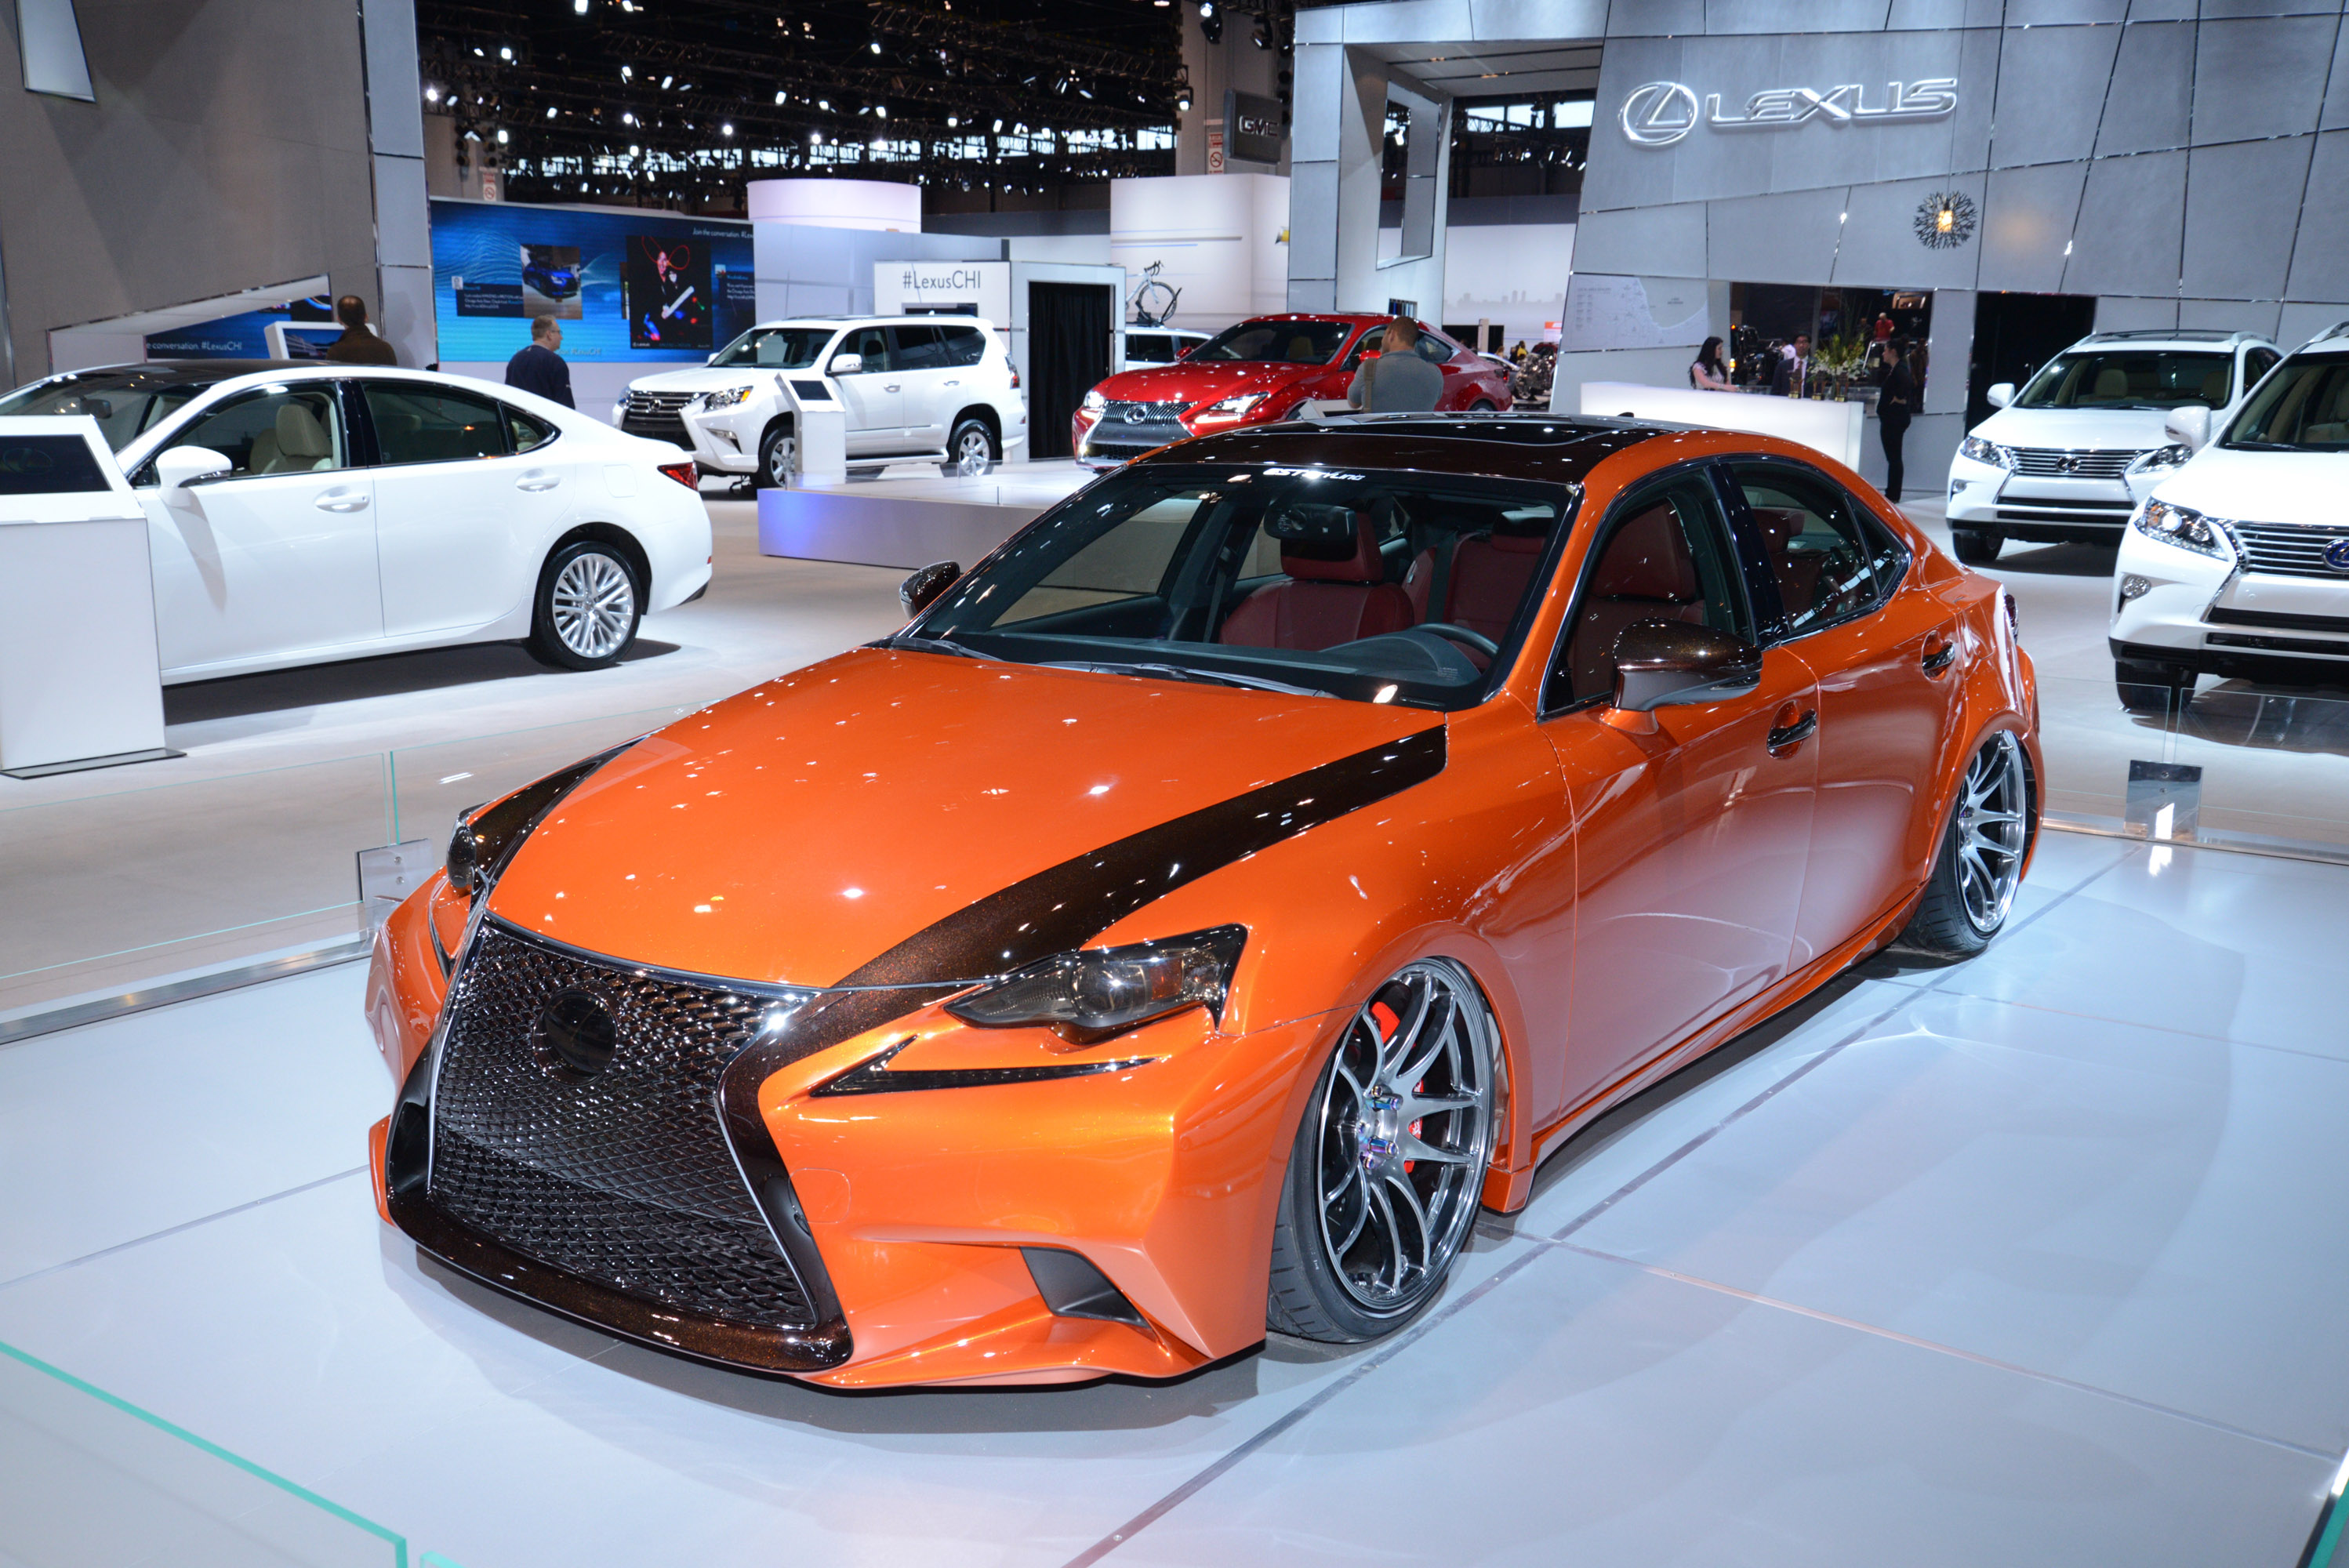 awd photo f spin autoblog quick gallery is sport photos lexus